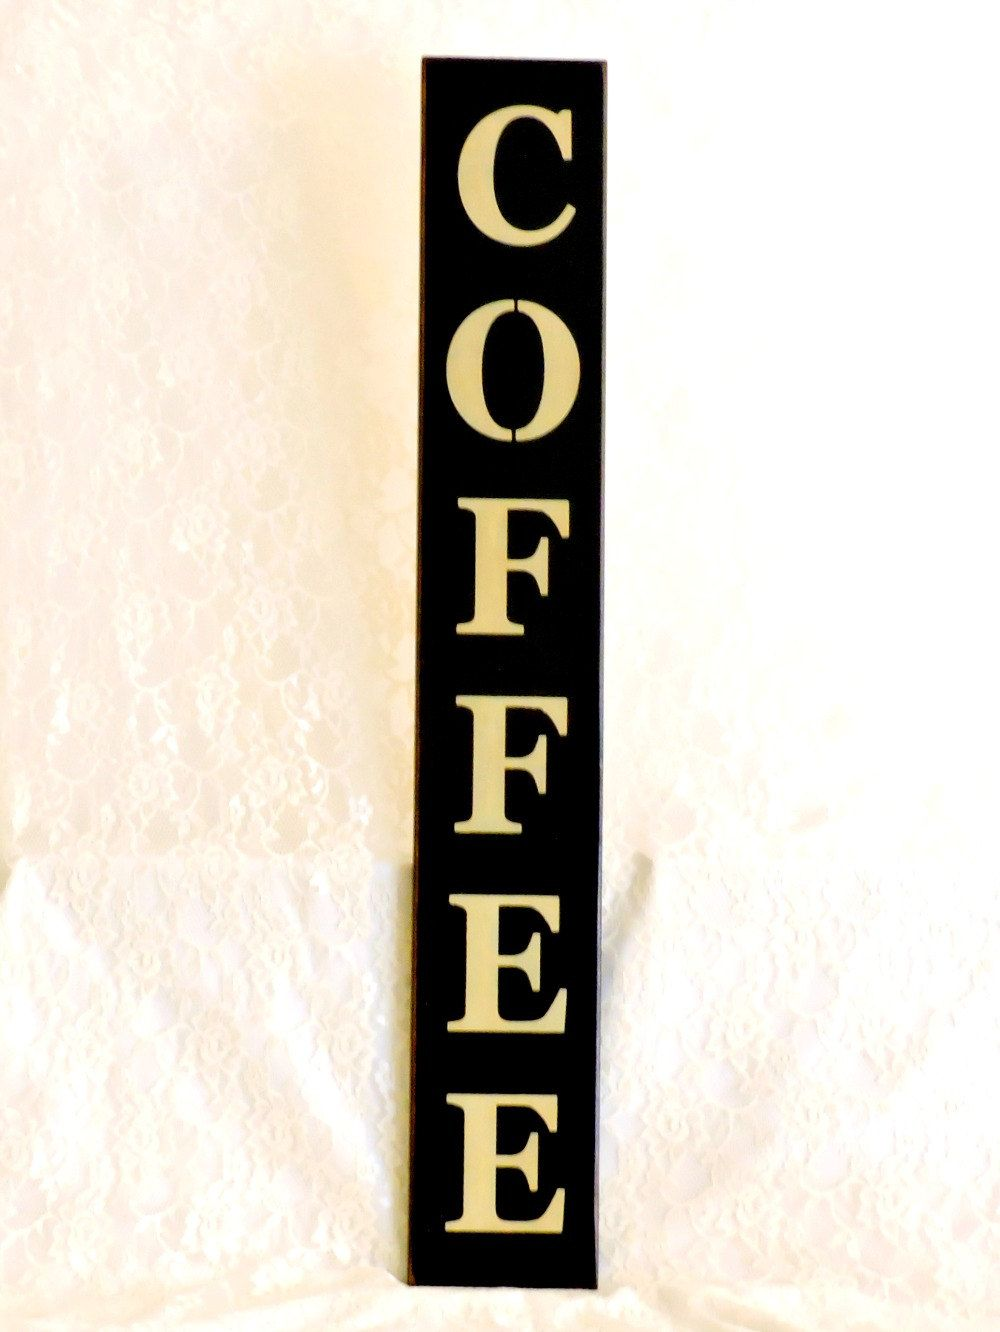 Wall Sign Decor Endearing Coffee  Primitive Country Painted Wall Sign Vertical Sign Design Decoration